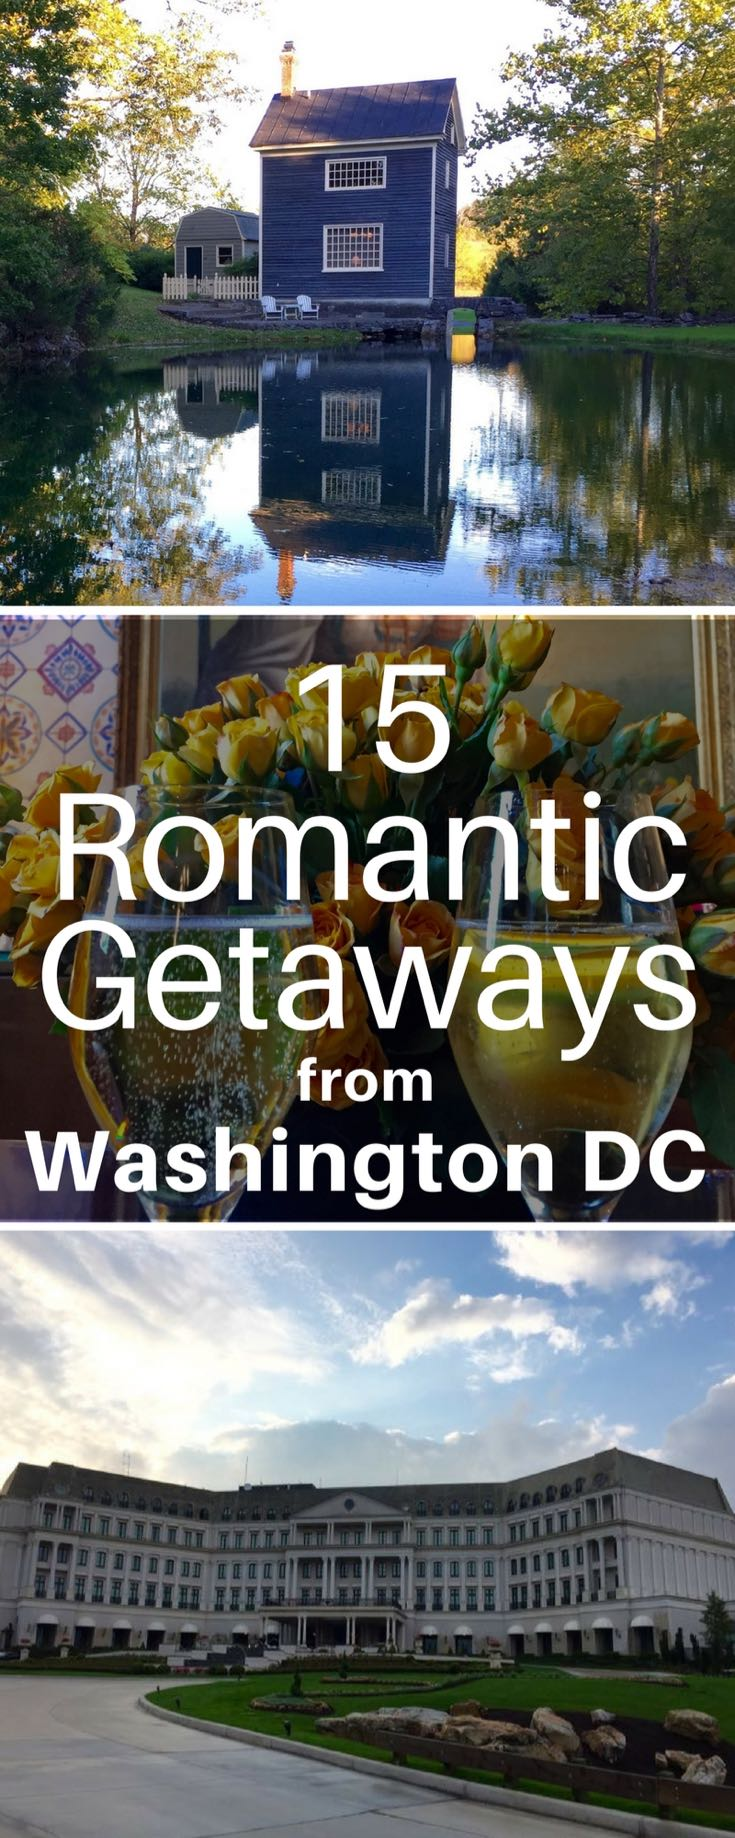 15 fabulous romantic getaways from washington dc fun in for Romantic weekend getaways dc